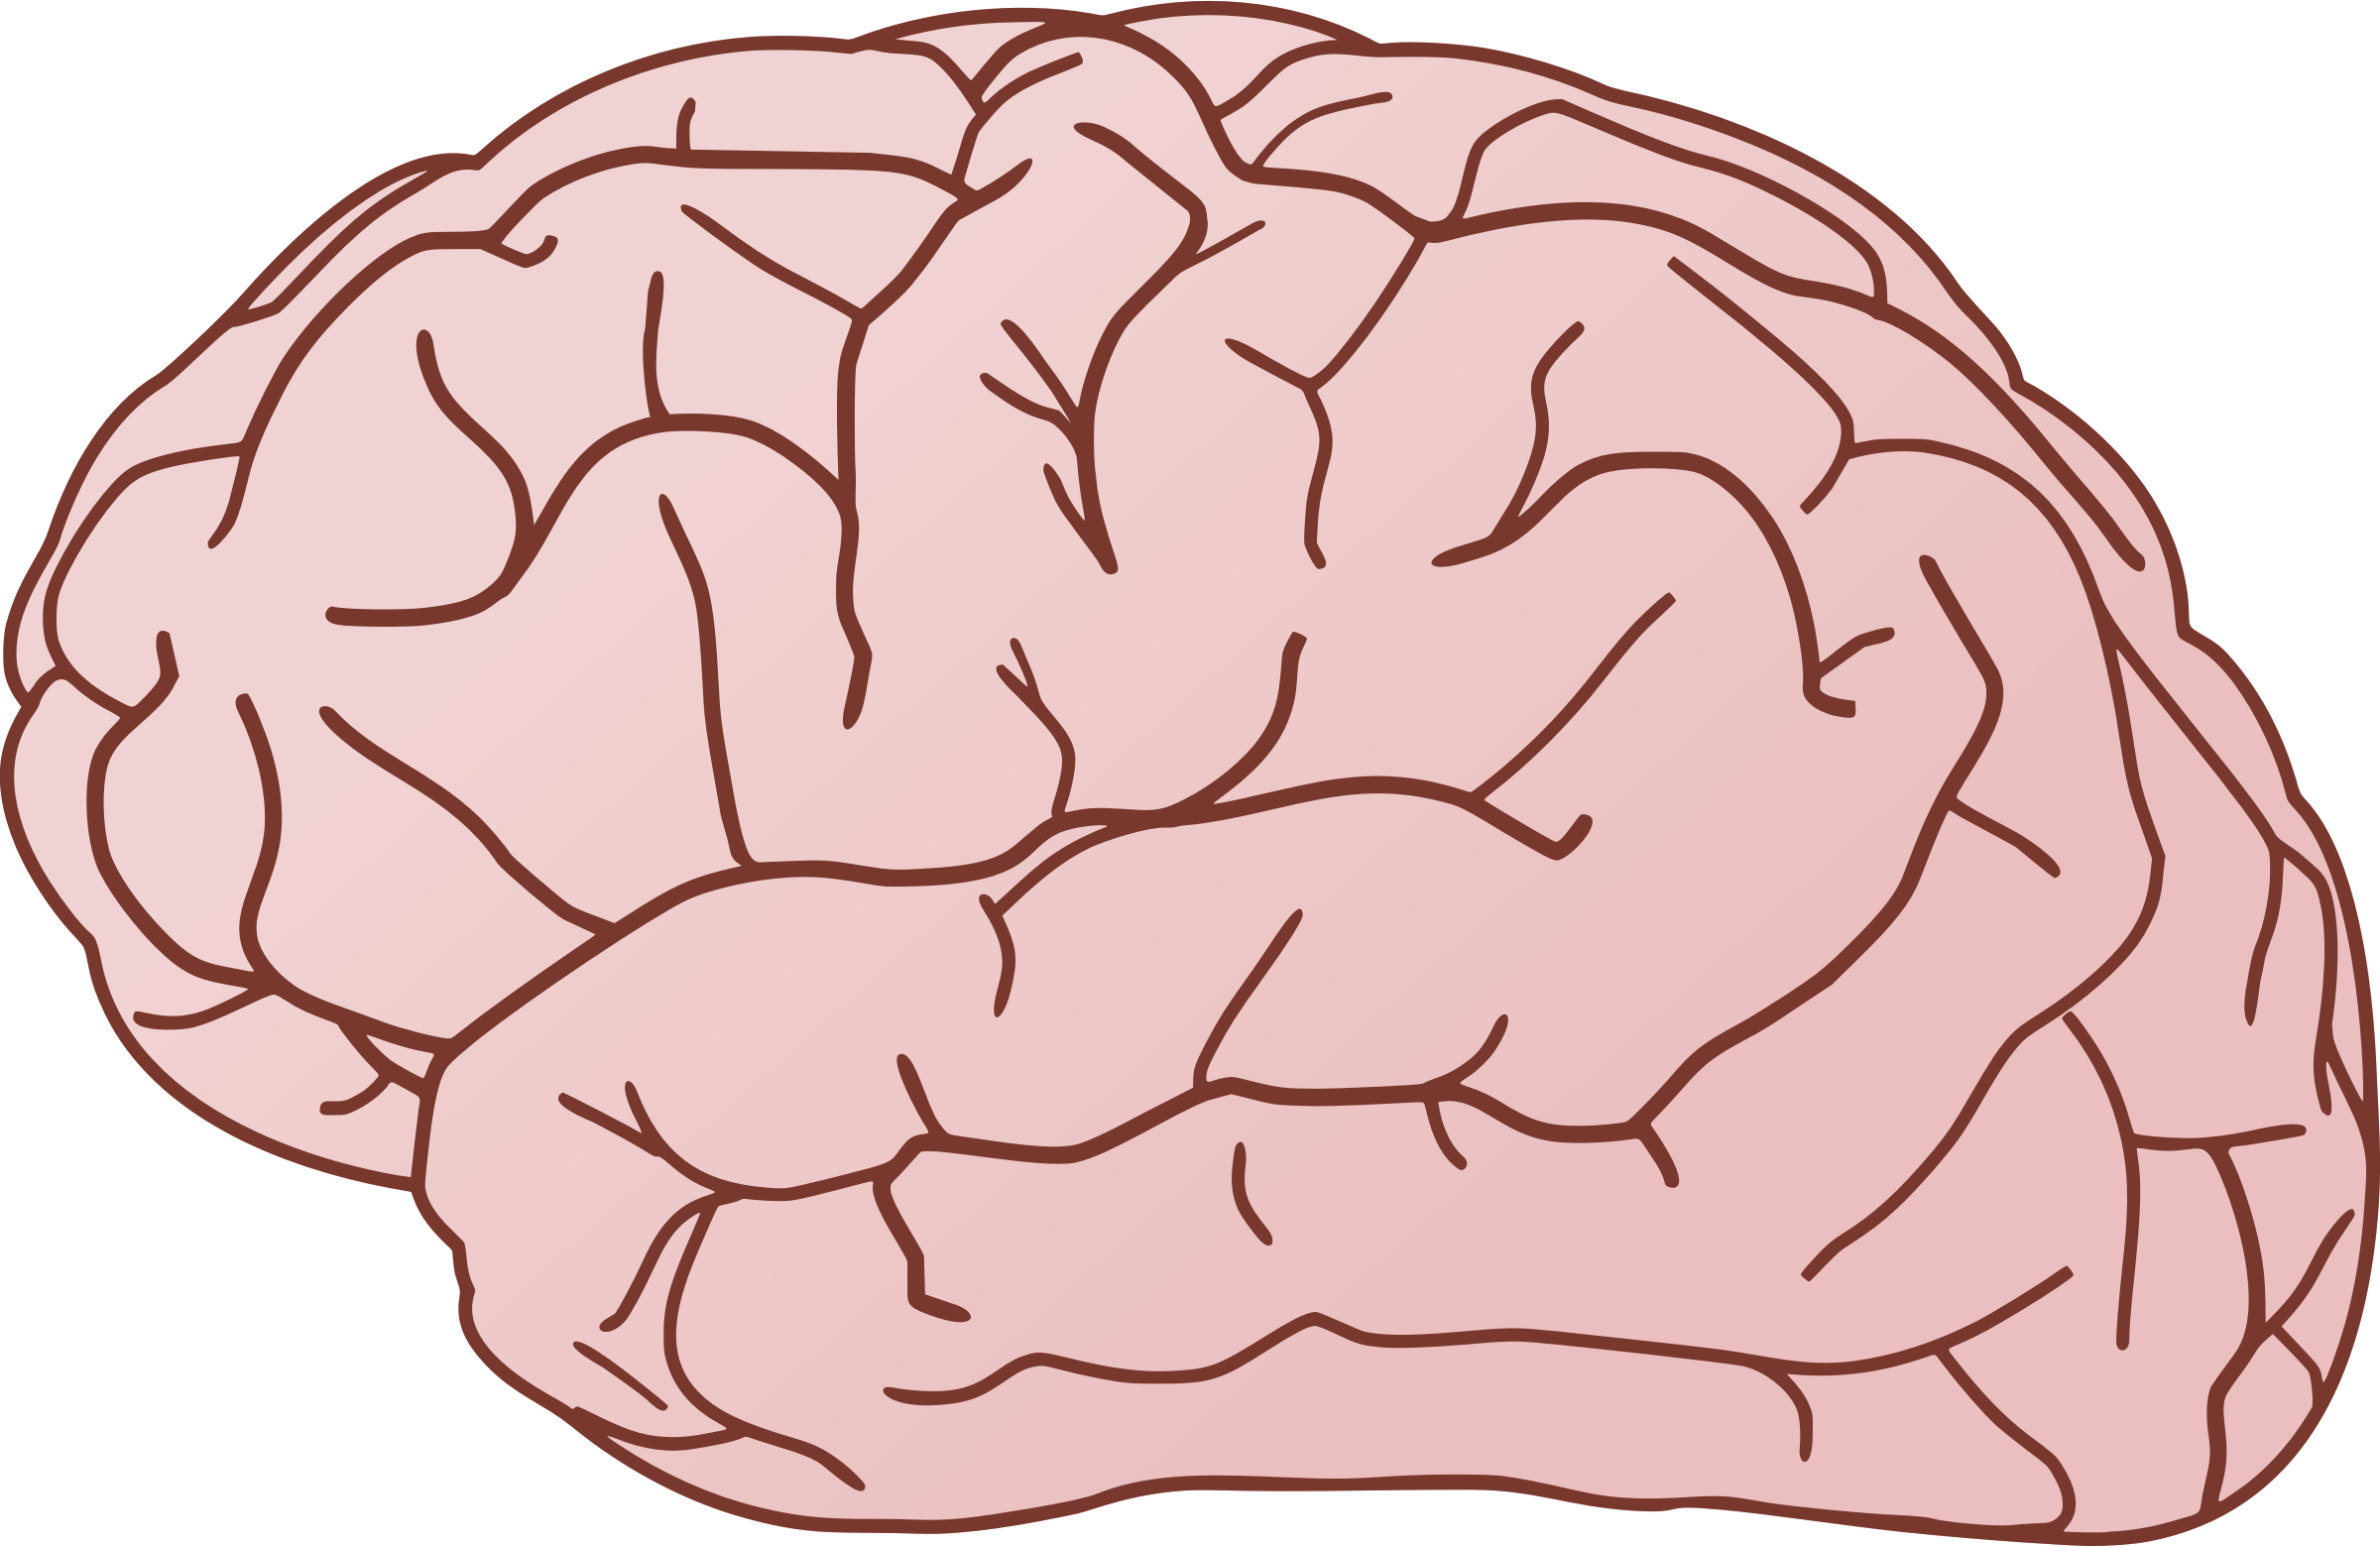 collection of transparent. Clipart brain mind